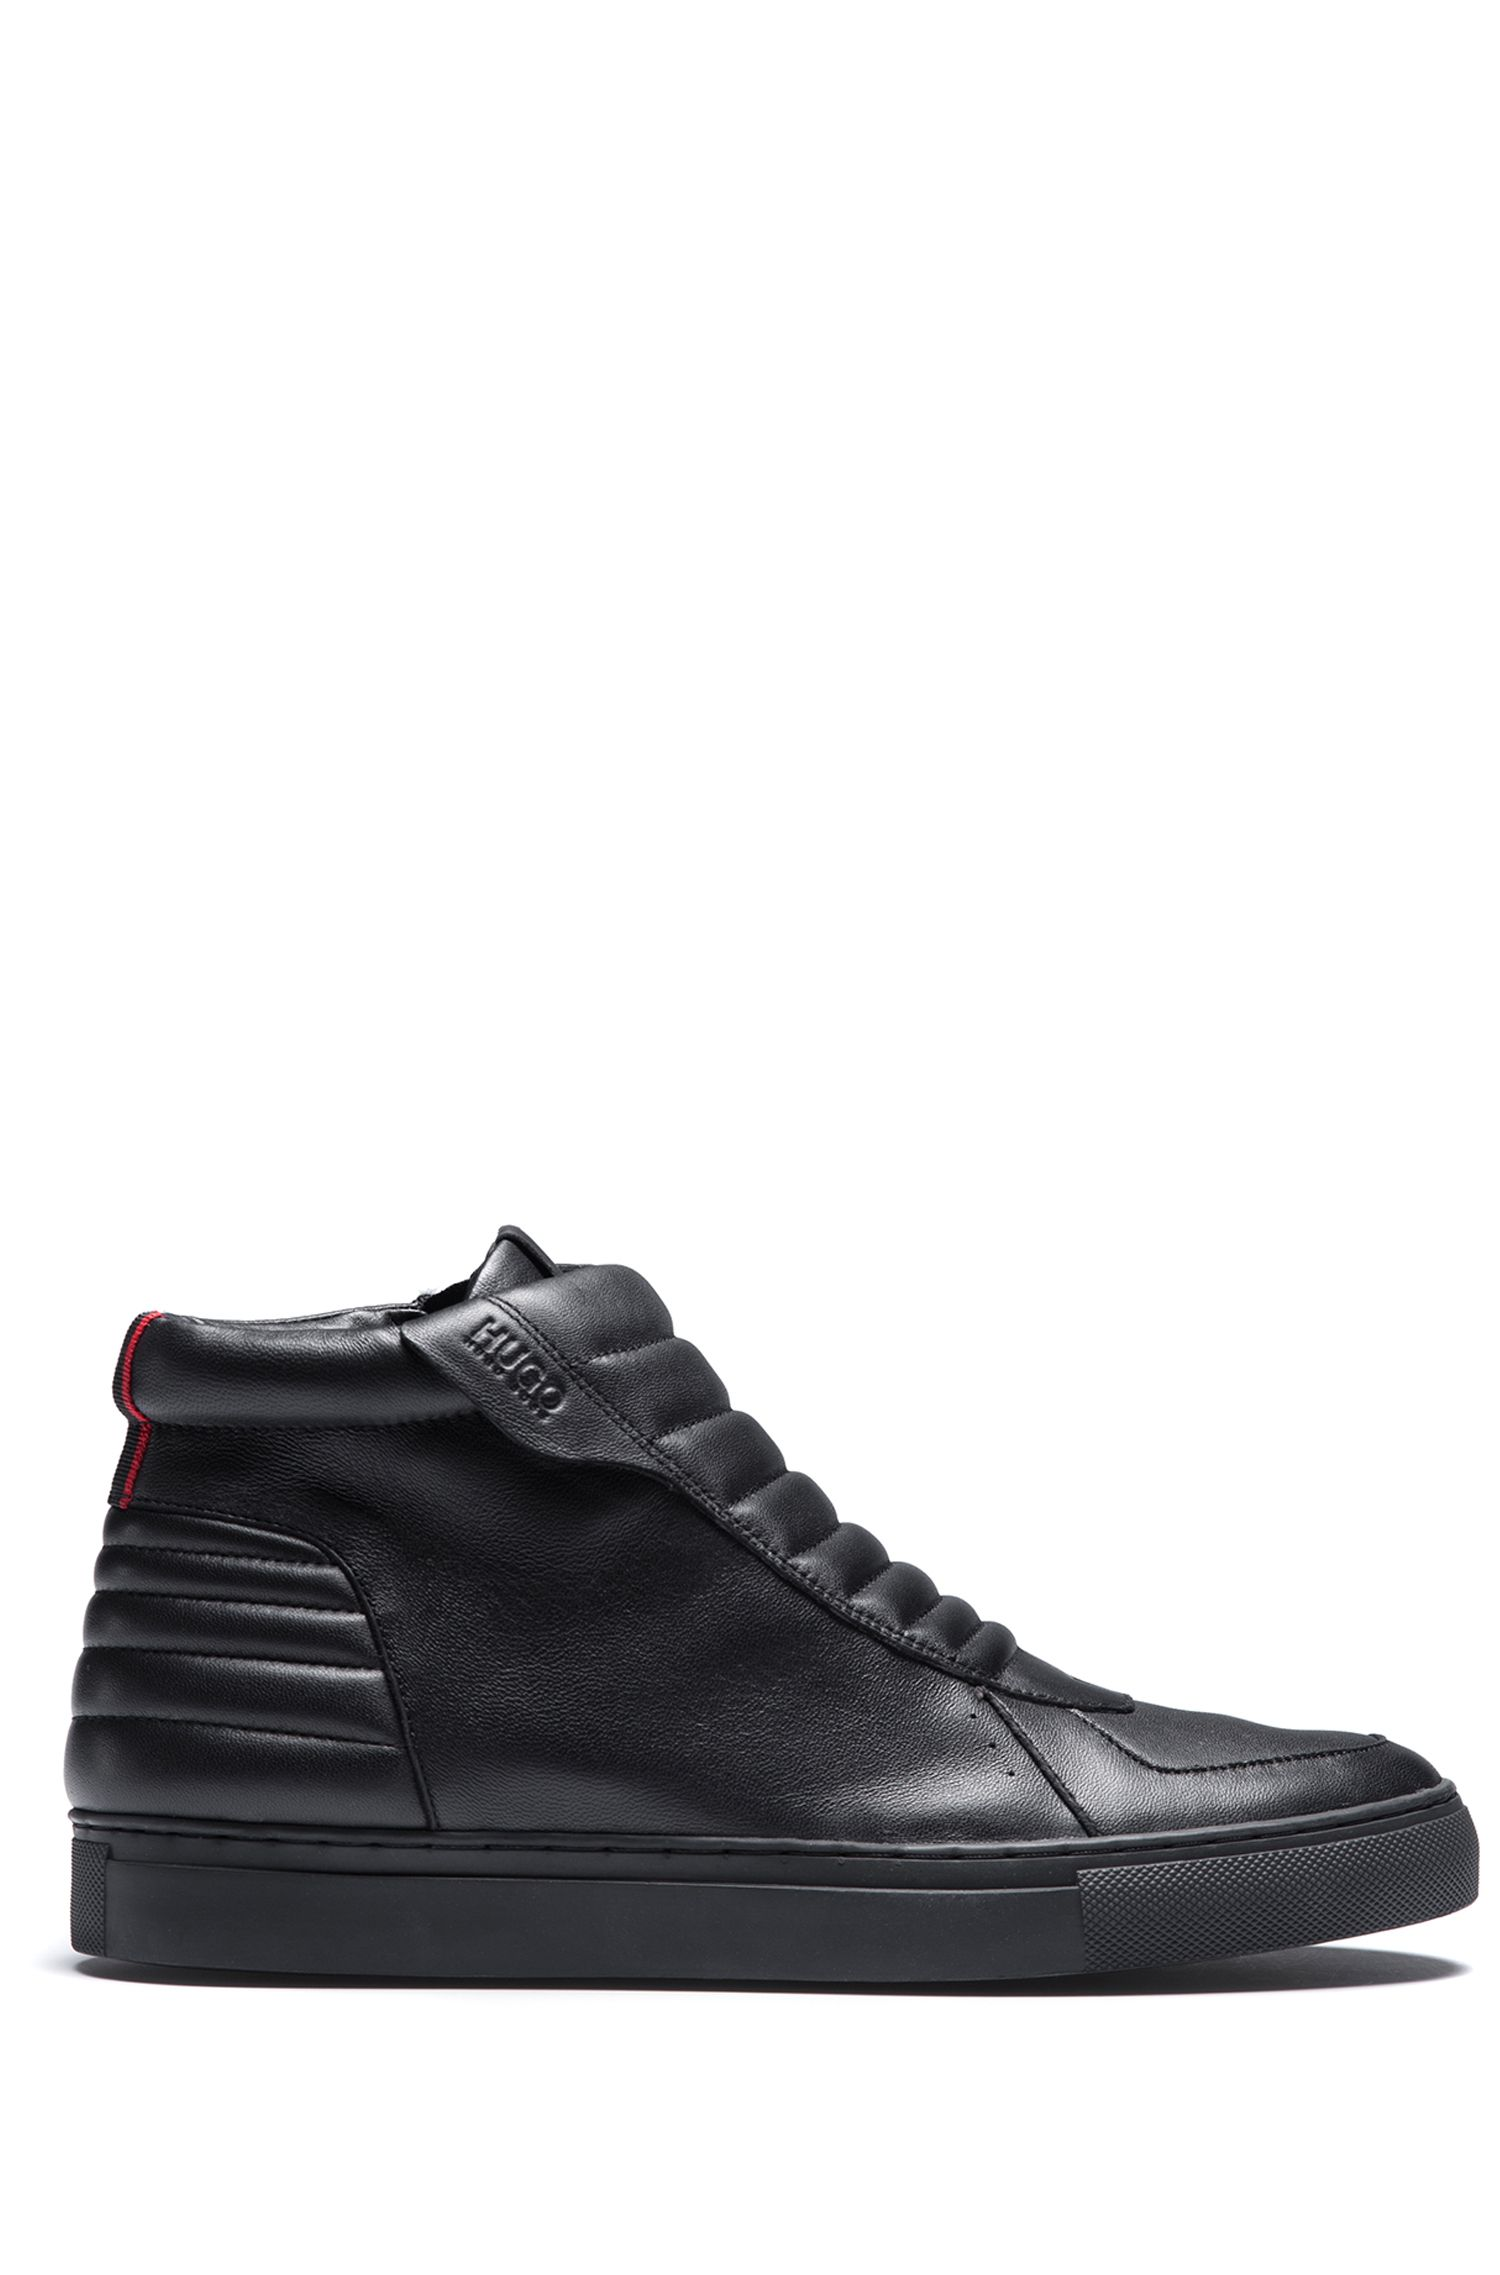 High-top zip-up trainers in padded nappa leather